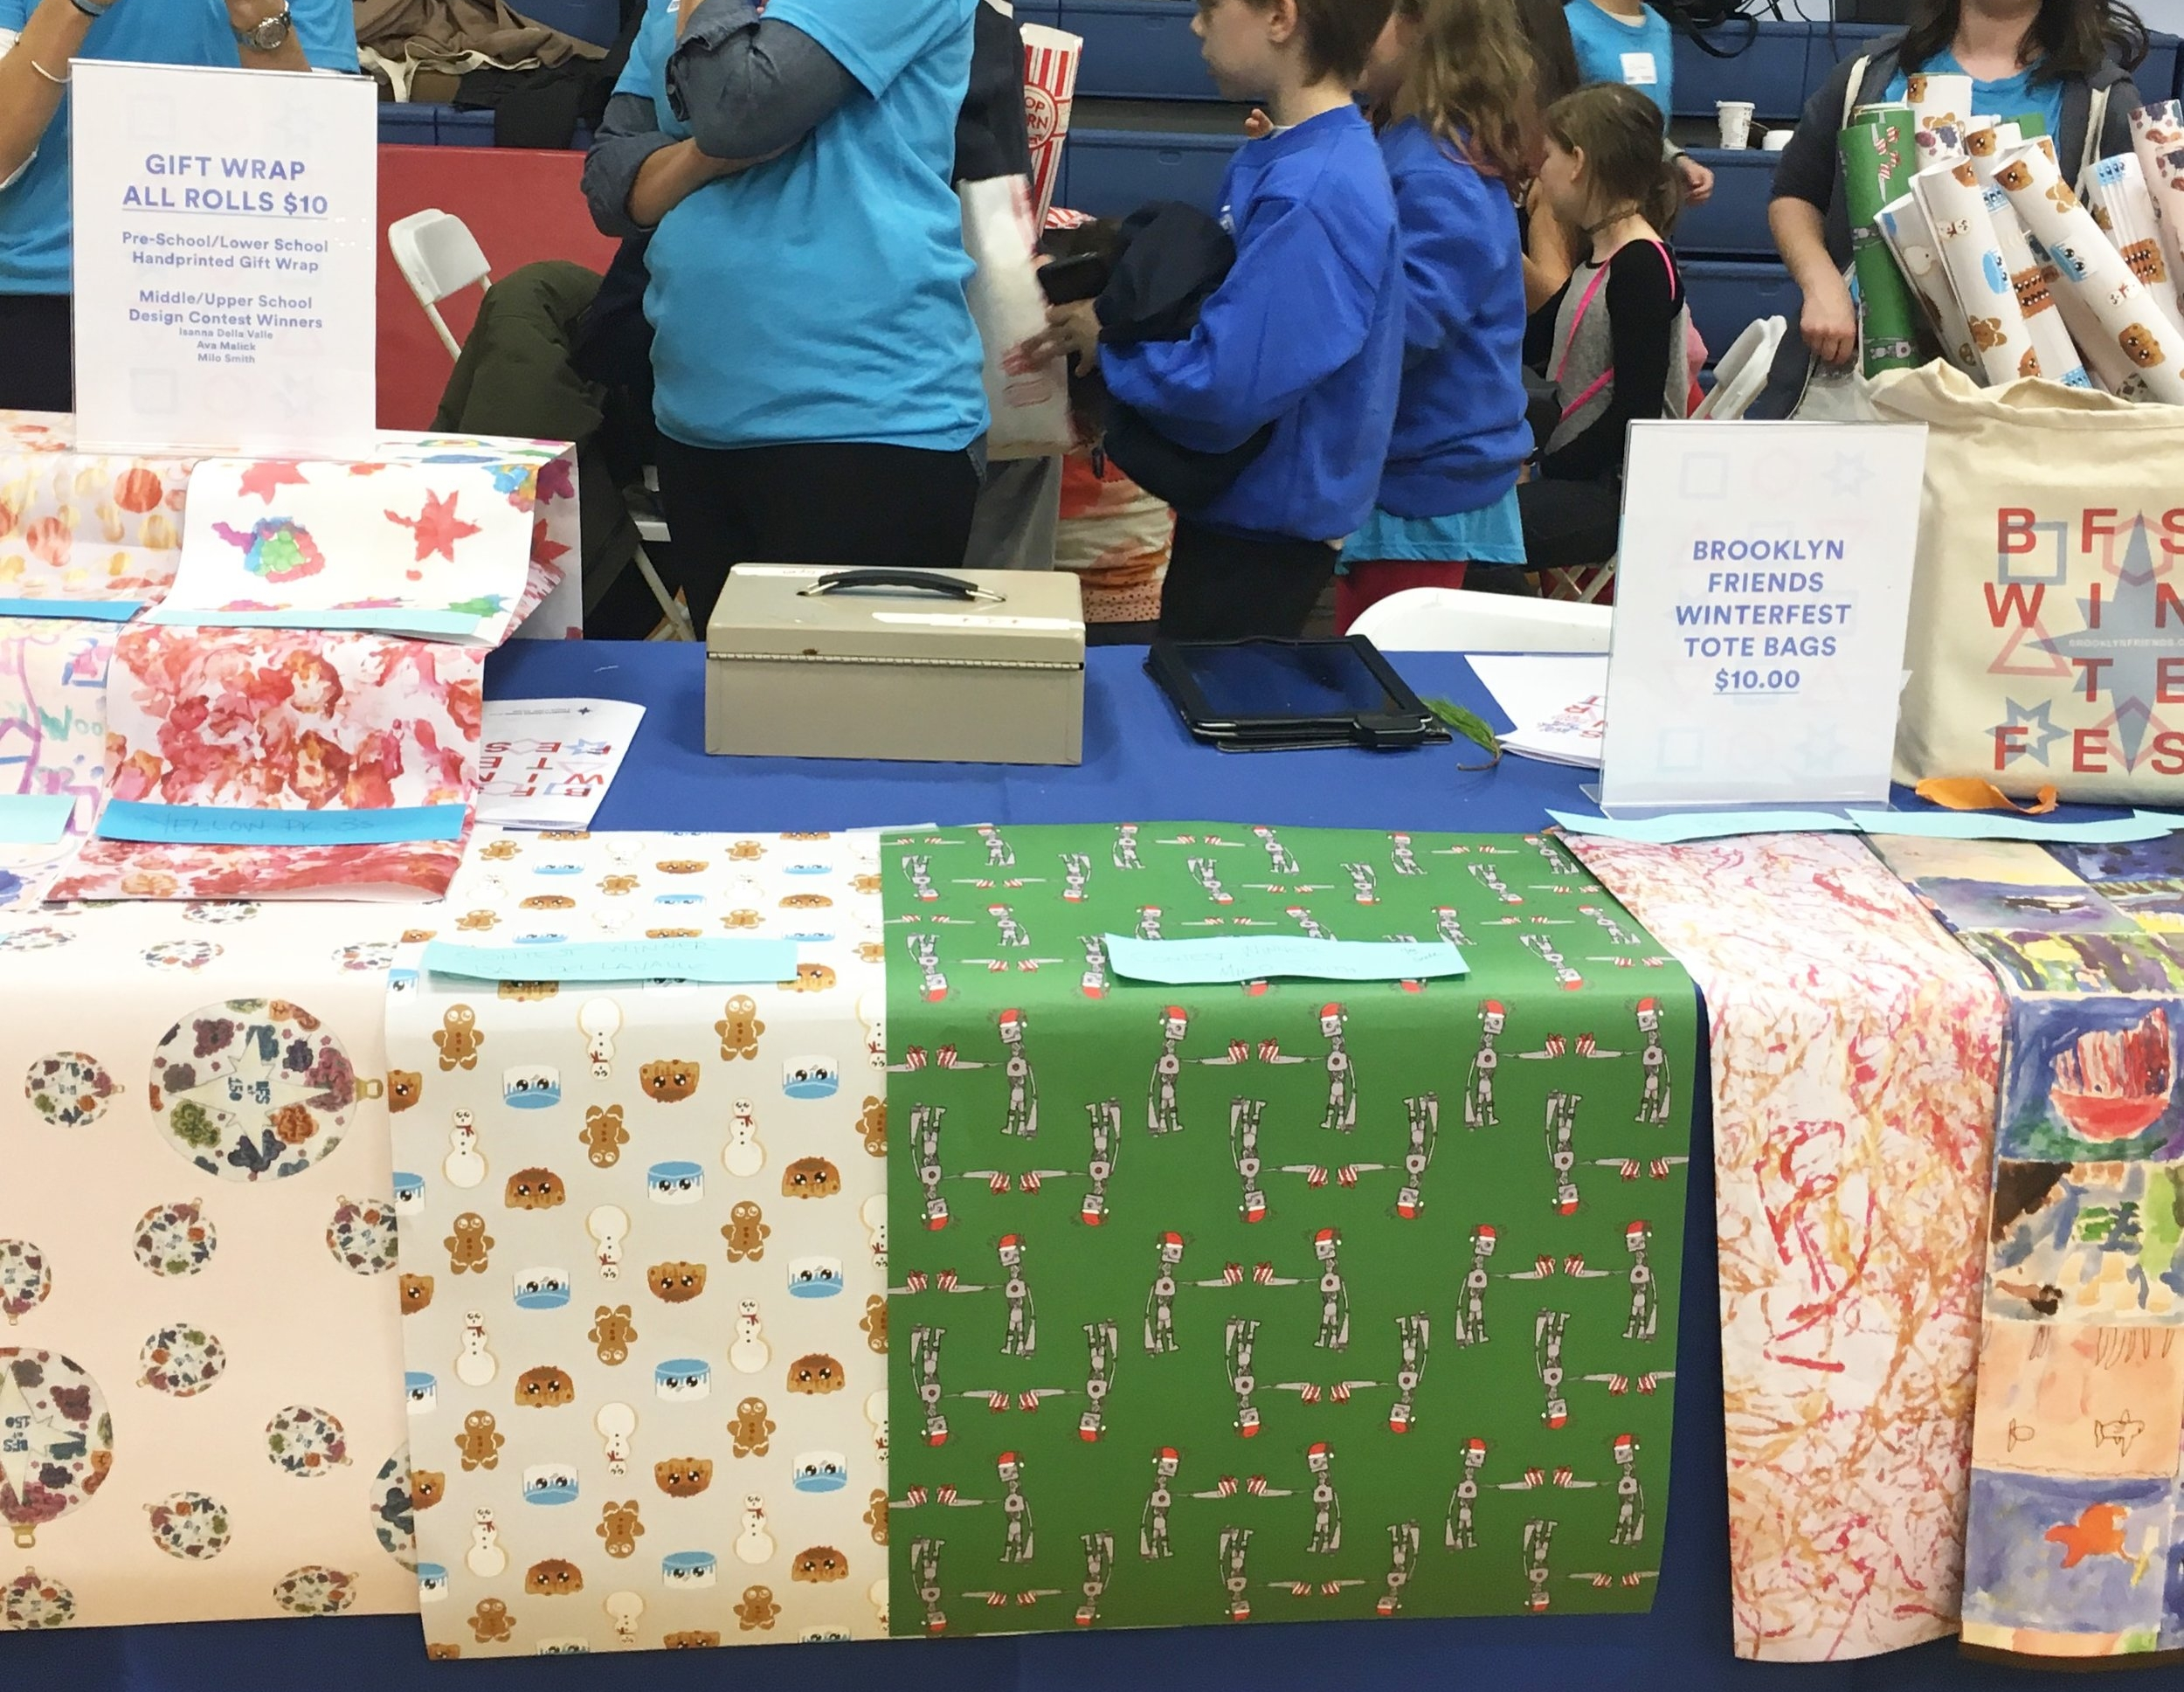 winning wrapping paper at Brooklyn Friends Winterfest